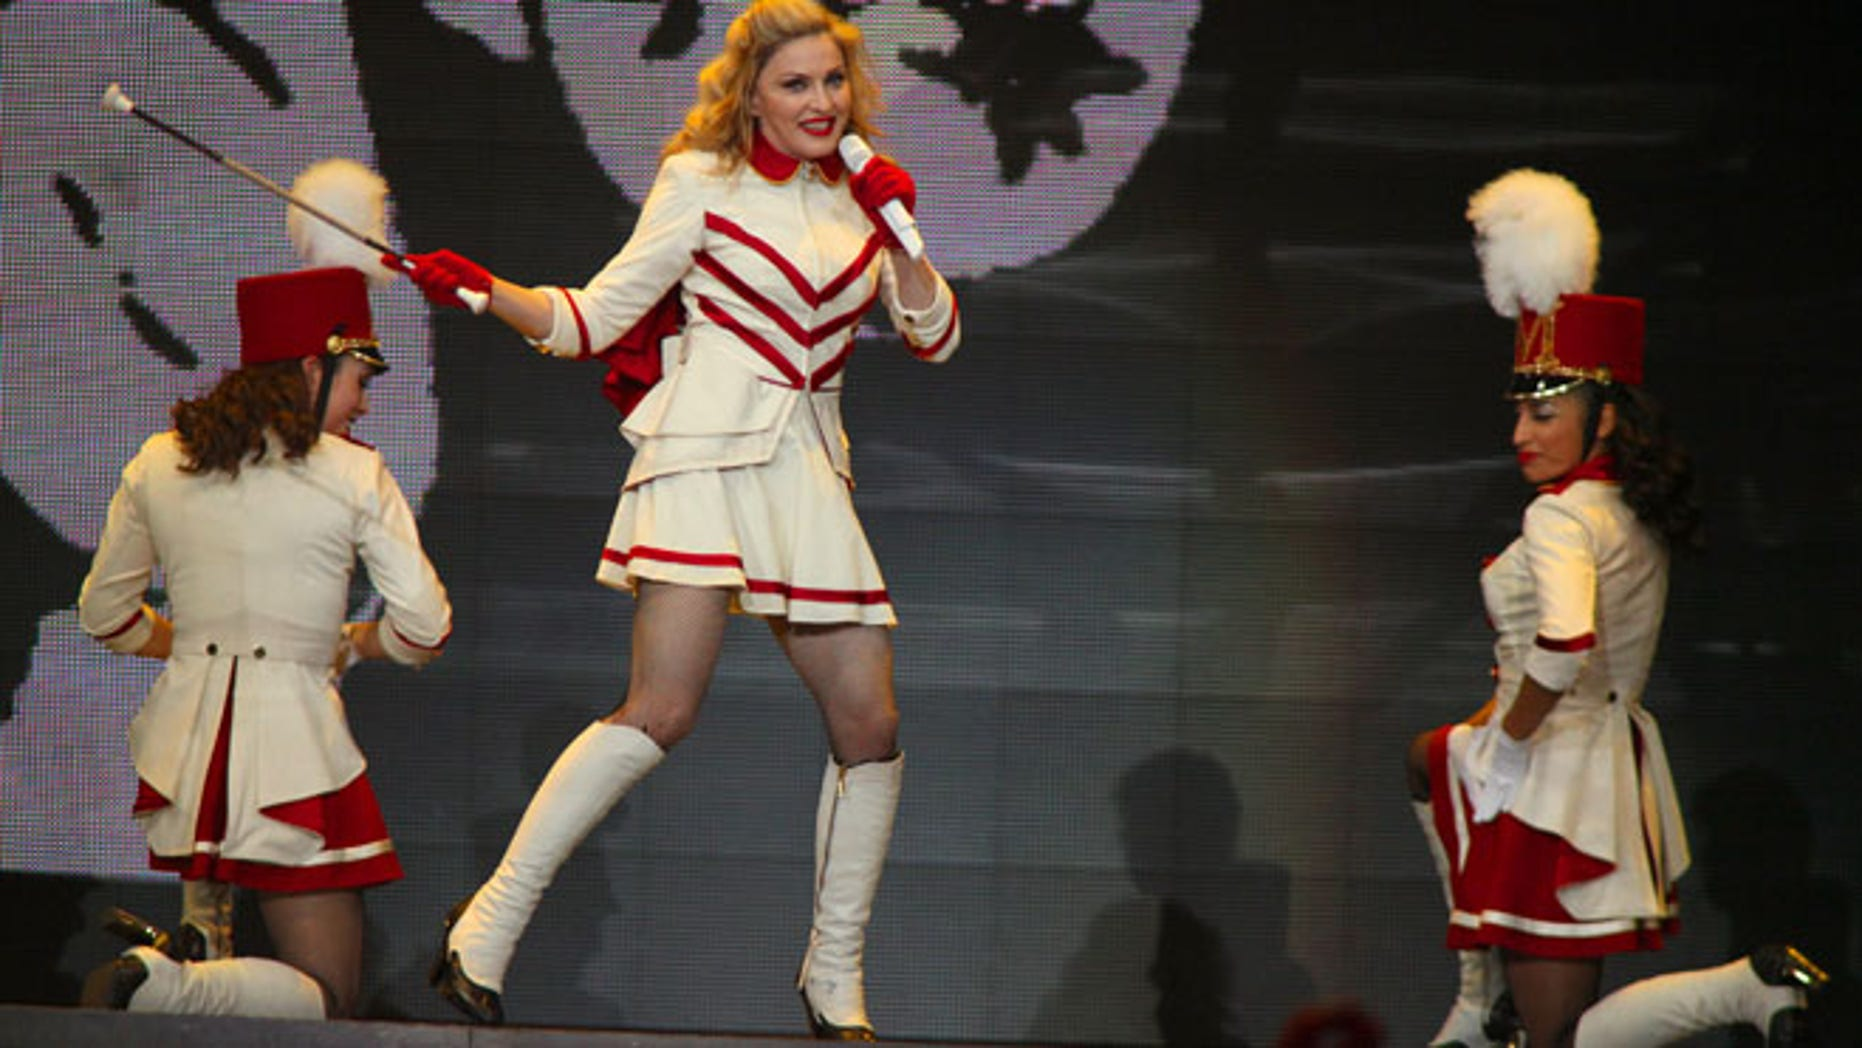 Madonna, shown here at the United Center in Chicago on Sept. 19, offered to strip to win votes for Obama during a concert at Washington's Verizon center.